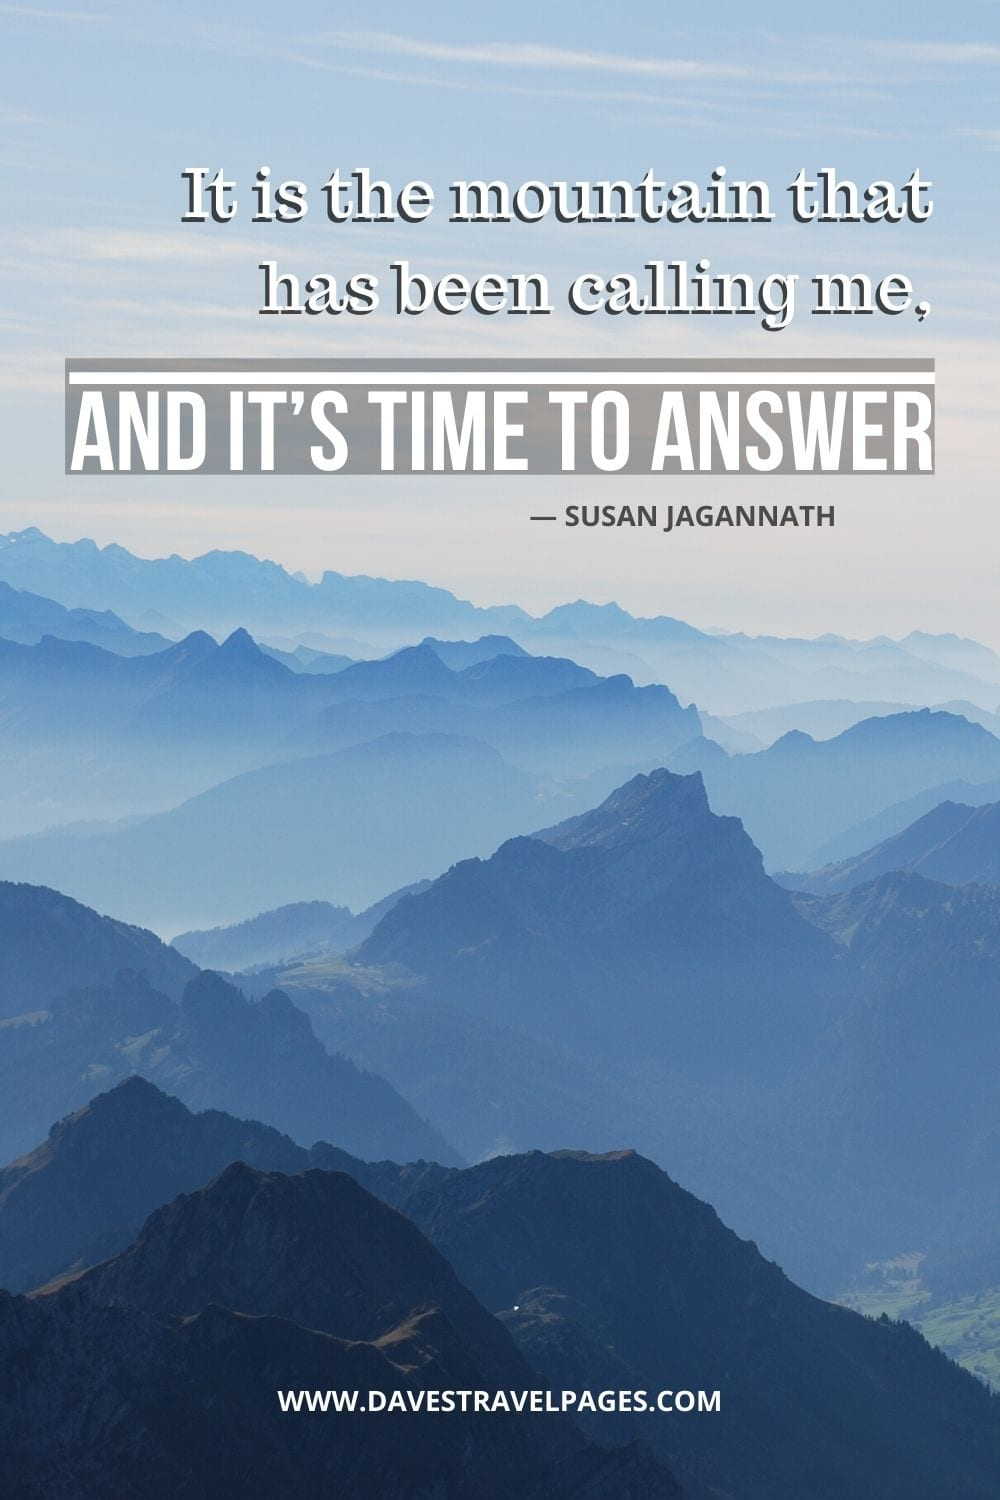 Mountain Quotes - It is the mountain that has been calling me, and it's time to answer. ― Susan Jagannath